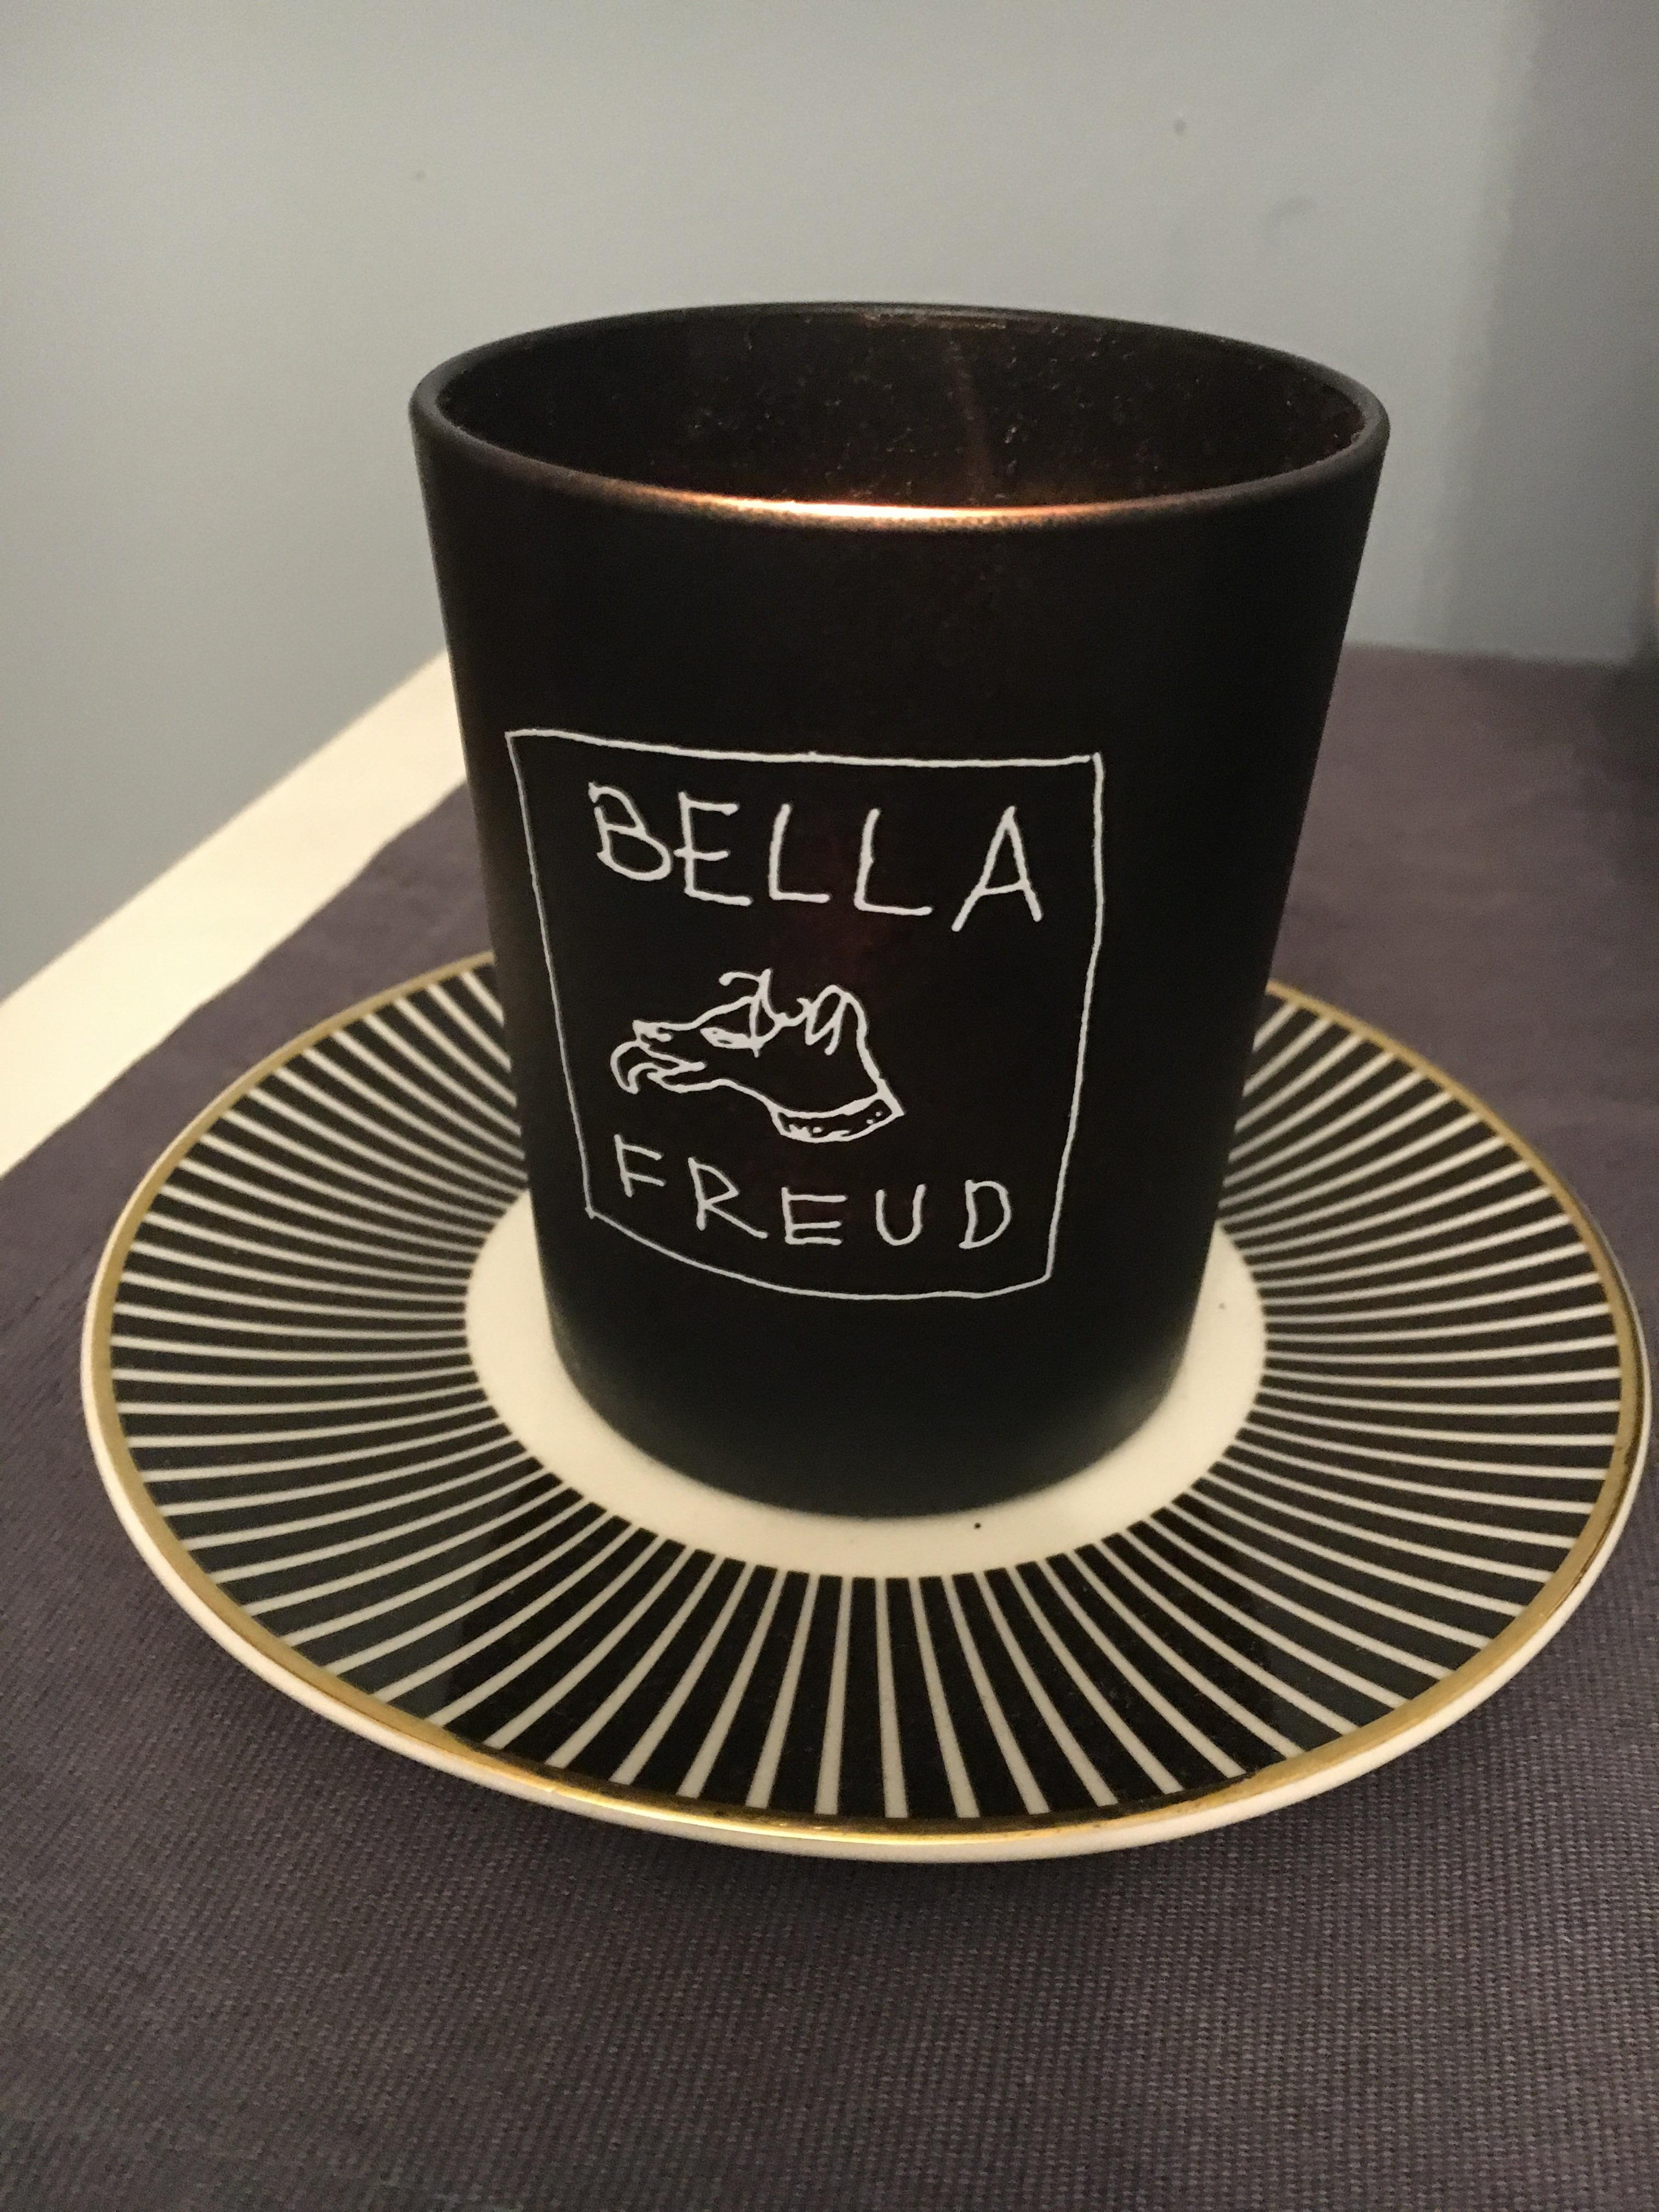 #hmhome #bellafreud #candle